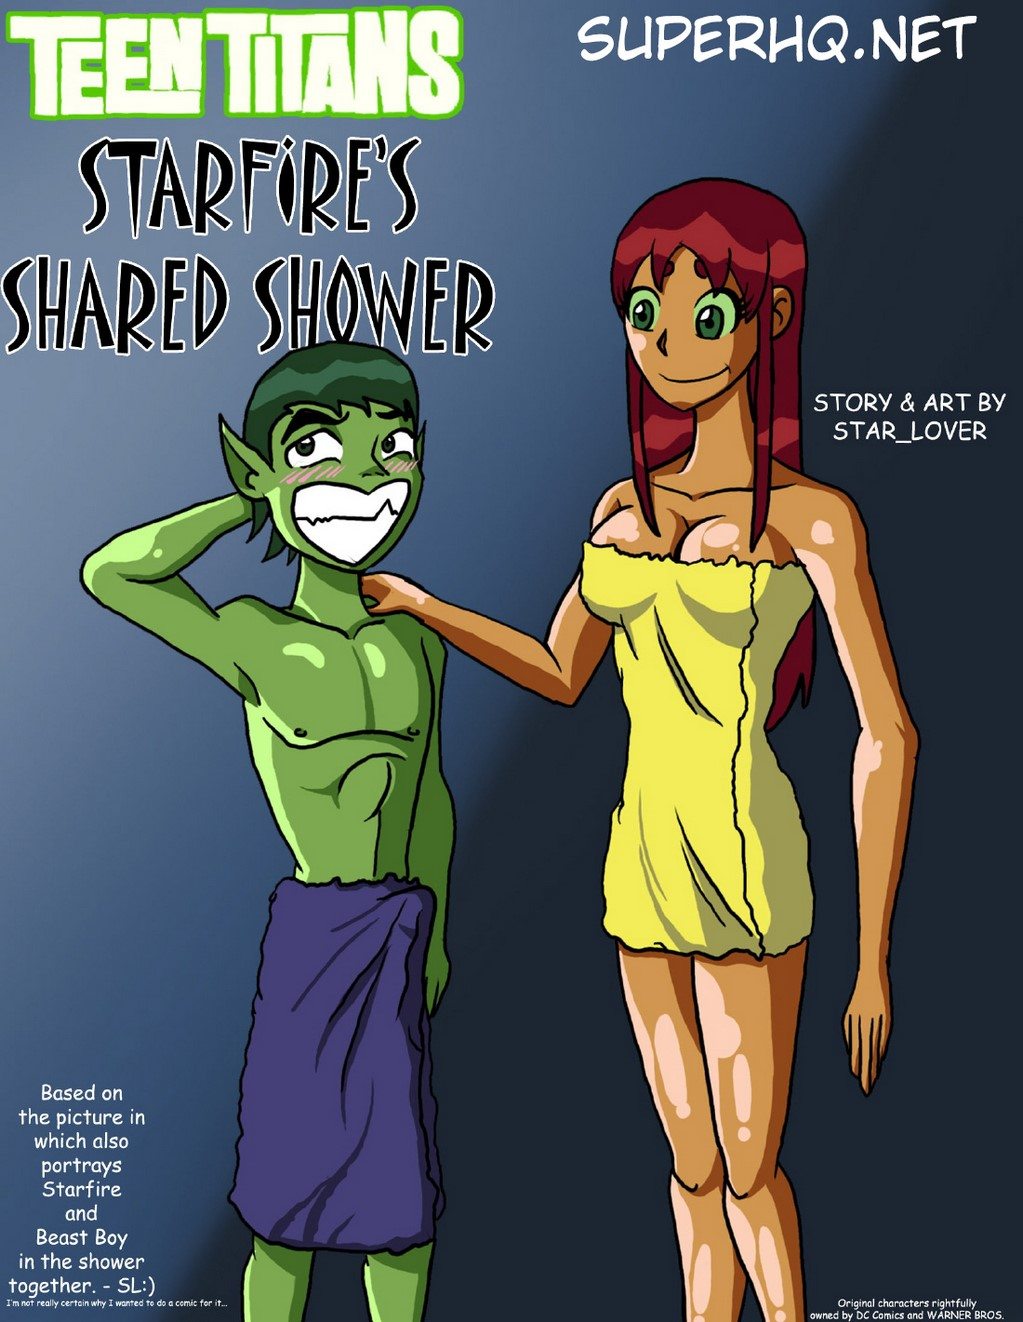 Starfire's Shared Shower – Teen Titans